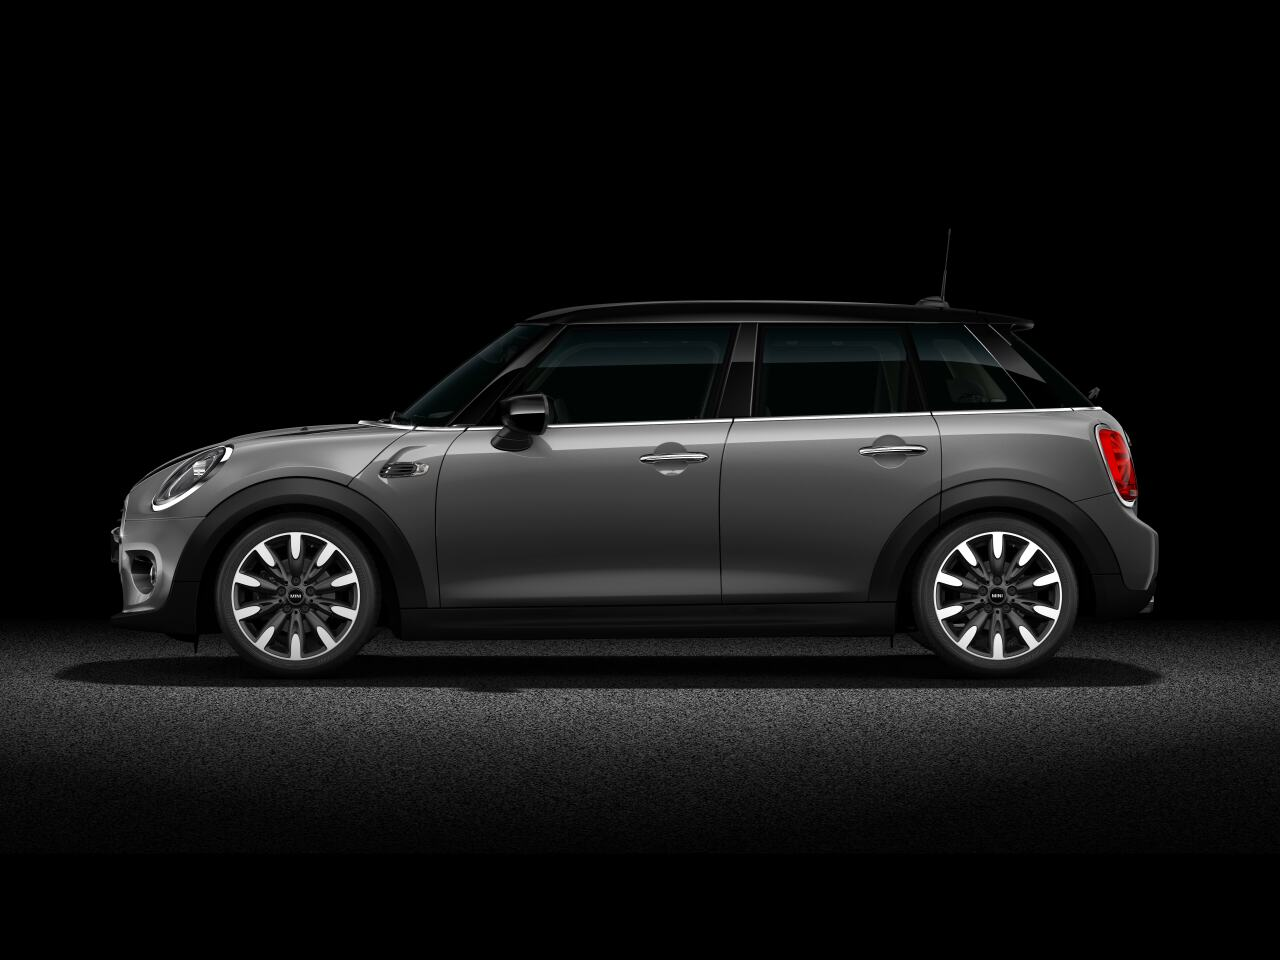 MINI Cooper Hatch 5 Door  side profile